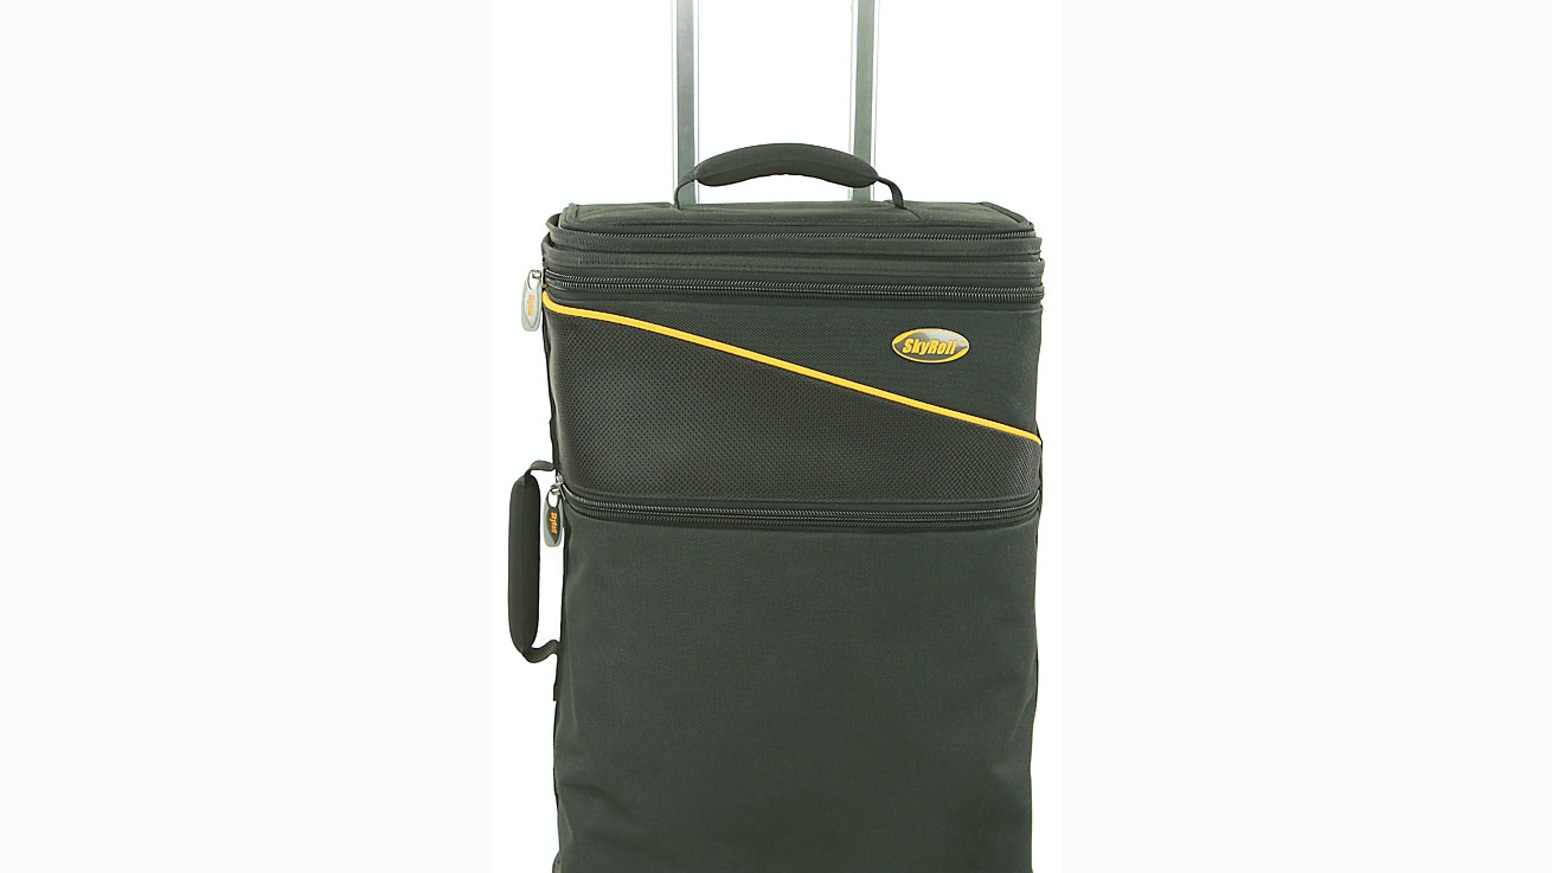 a6d2691c4aa9 SkyRoll Spinner: Suitcase, Garment Bag, & Laptop Bag in One by Don ...